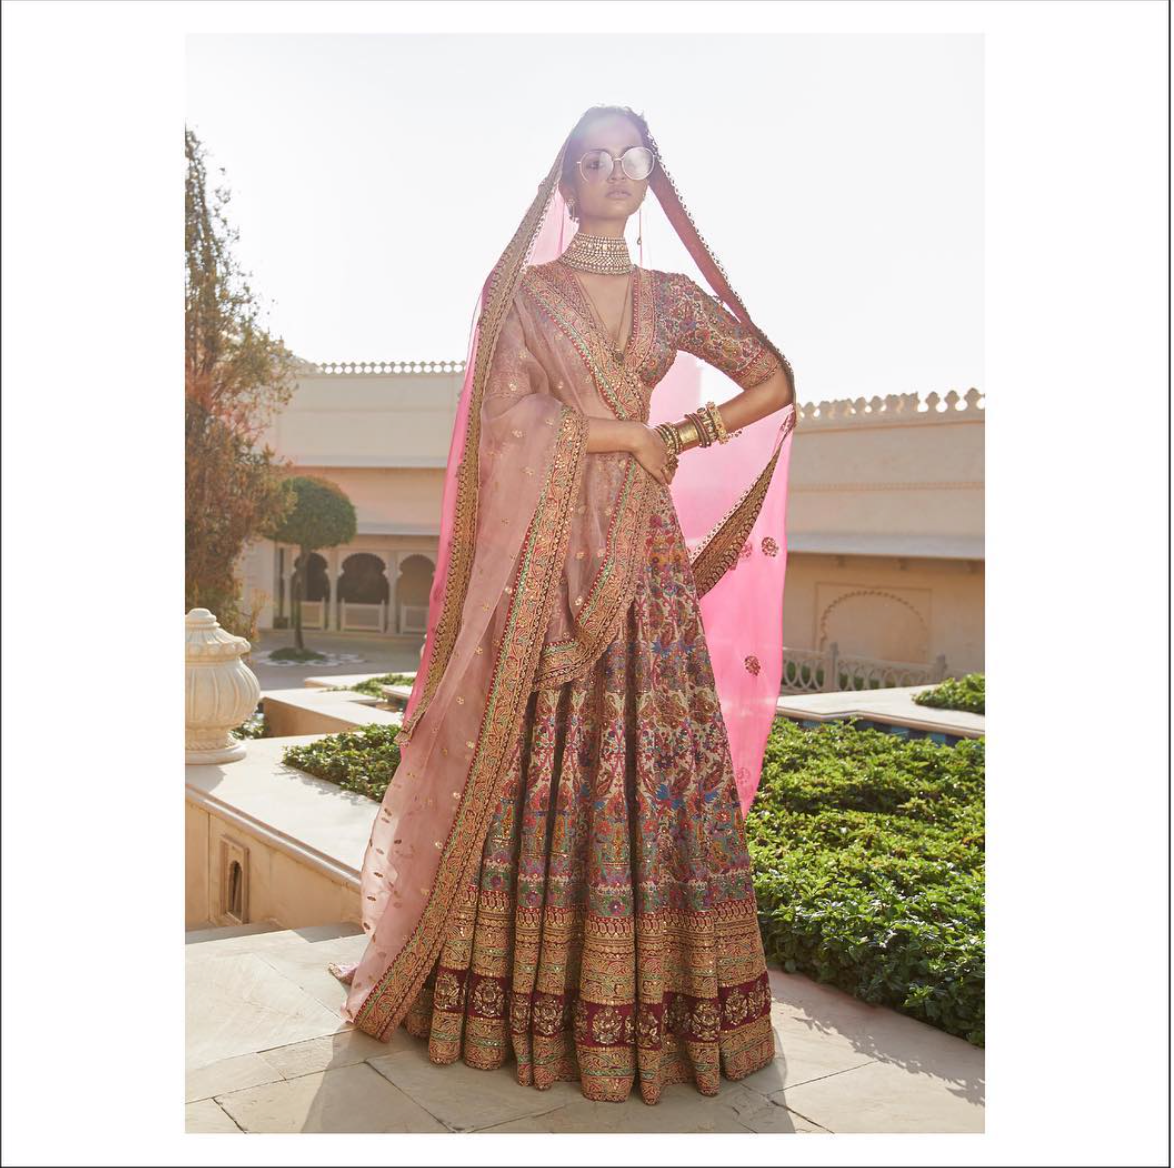 Sabyasachi Roohbab Lehenga - The Grand Trunk